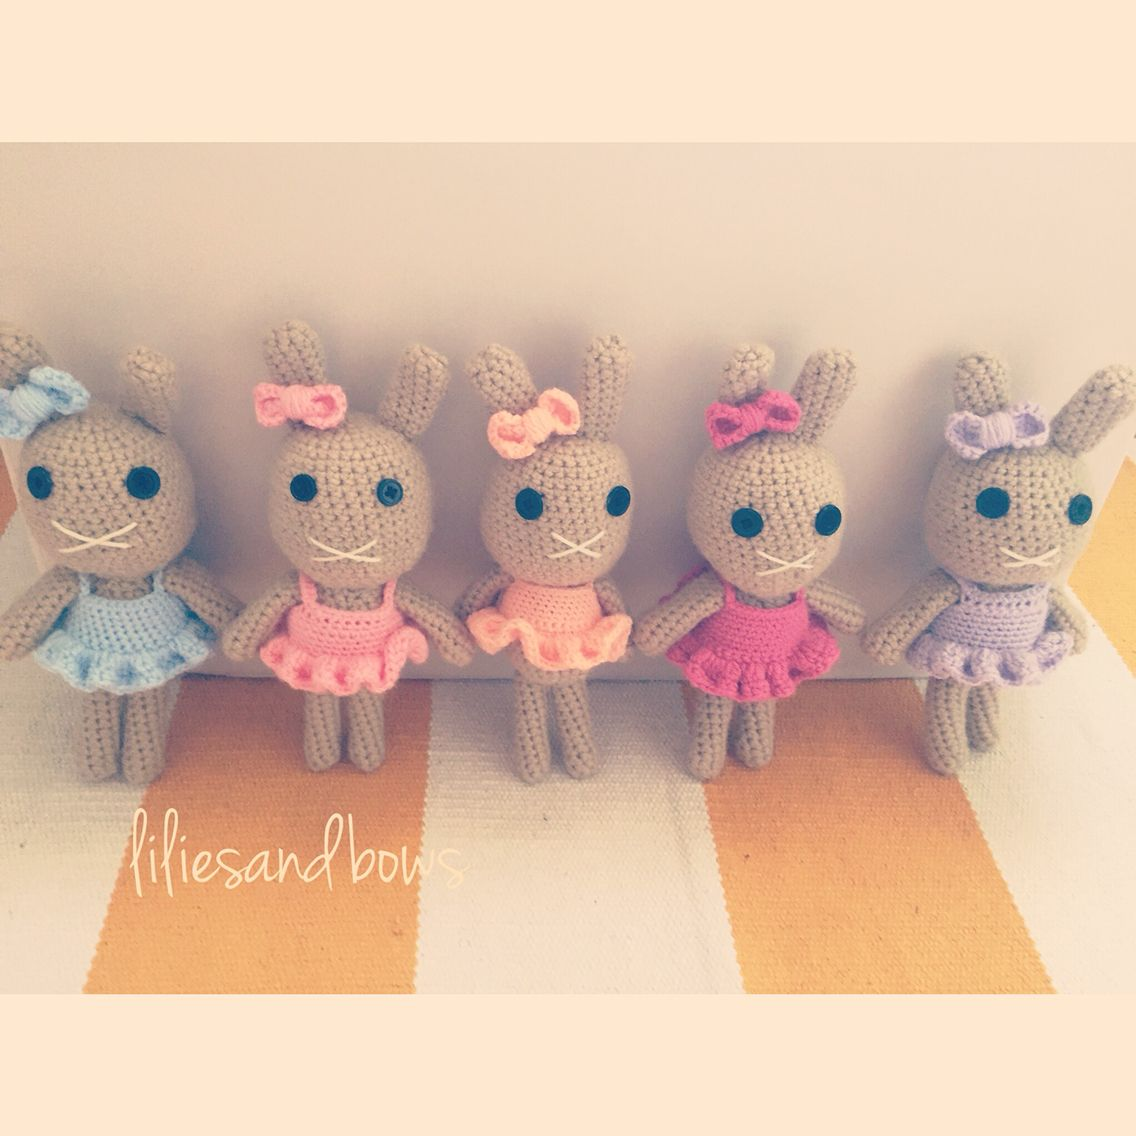 Handmade bunny dolls by lilies and bows